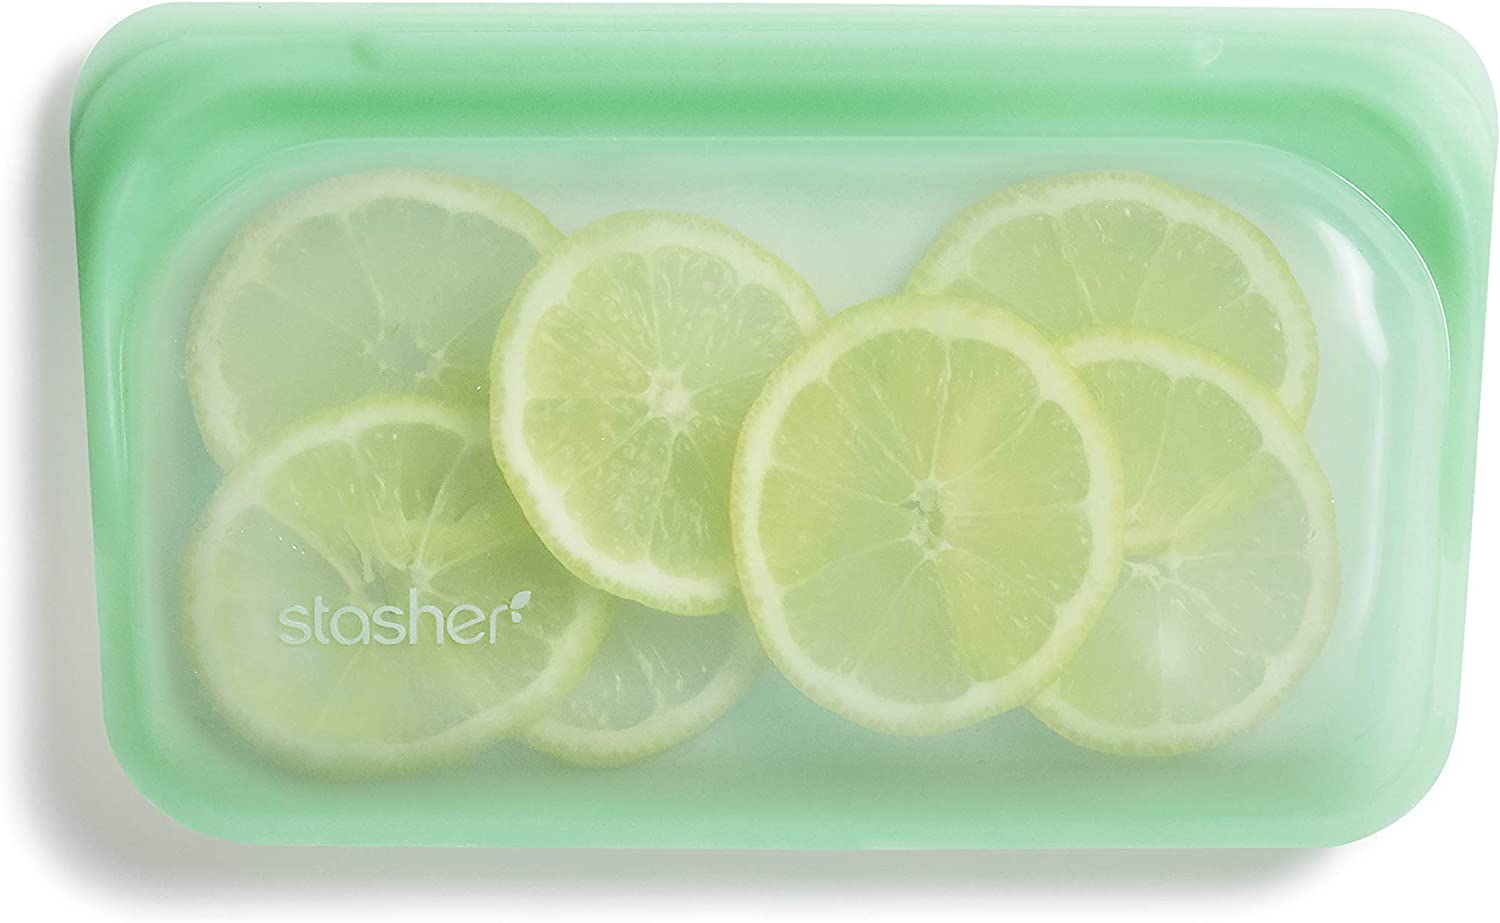 Stasher Platinum Silicone Food Grade Reusable Storage Bag, Mint (Snack) | Reduce Single-Use Plastic | Cook, Store, Sous Vide, or Freeze | Leakproof, Dishwasher-Safe, Eco-friendly, Non-Toxic | 9.9 Oz